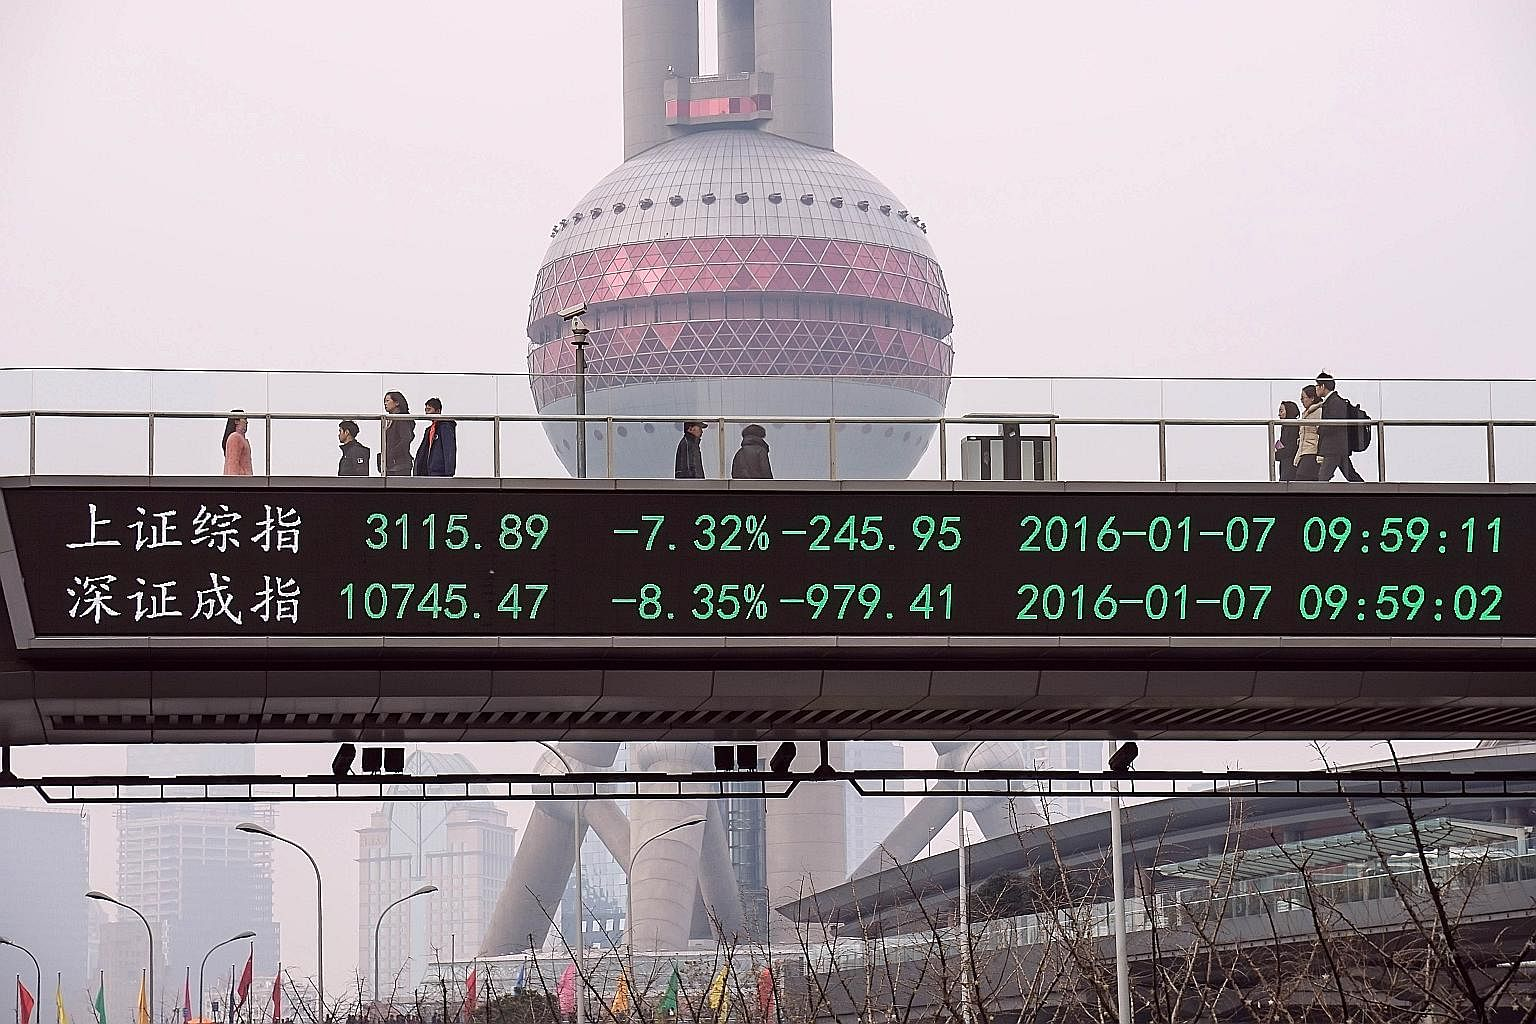 A bridge in Shanghai displaying share price movements. A year of stock market turmoil led to China's leaders dismissing China Securities Regulatory Commission chairman Xiao Gang last Saturday. New securities watchdog chief Liu Shiyu must seek to rest